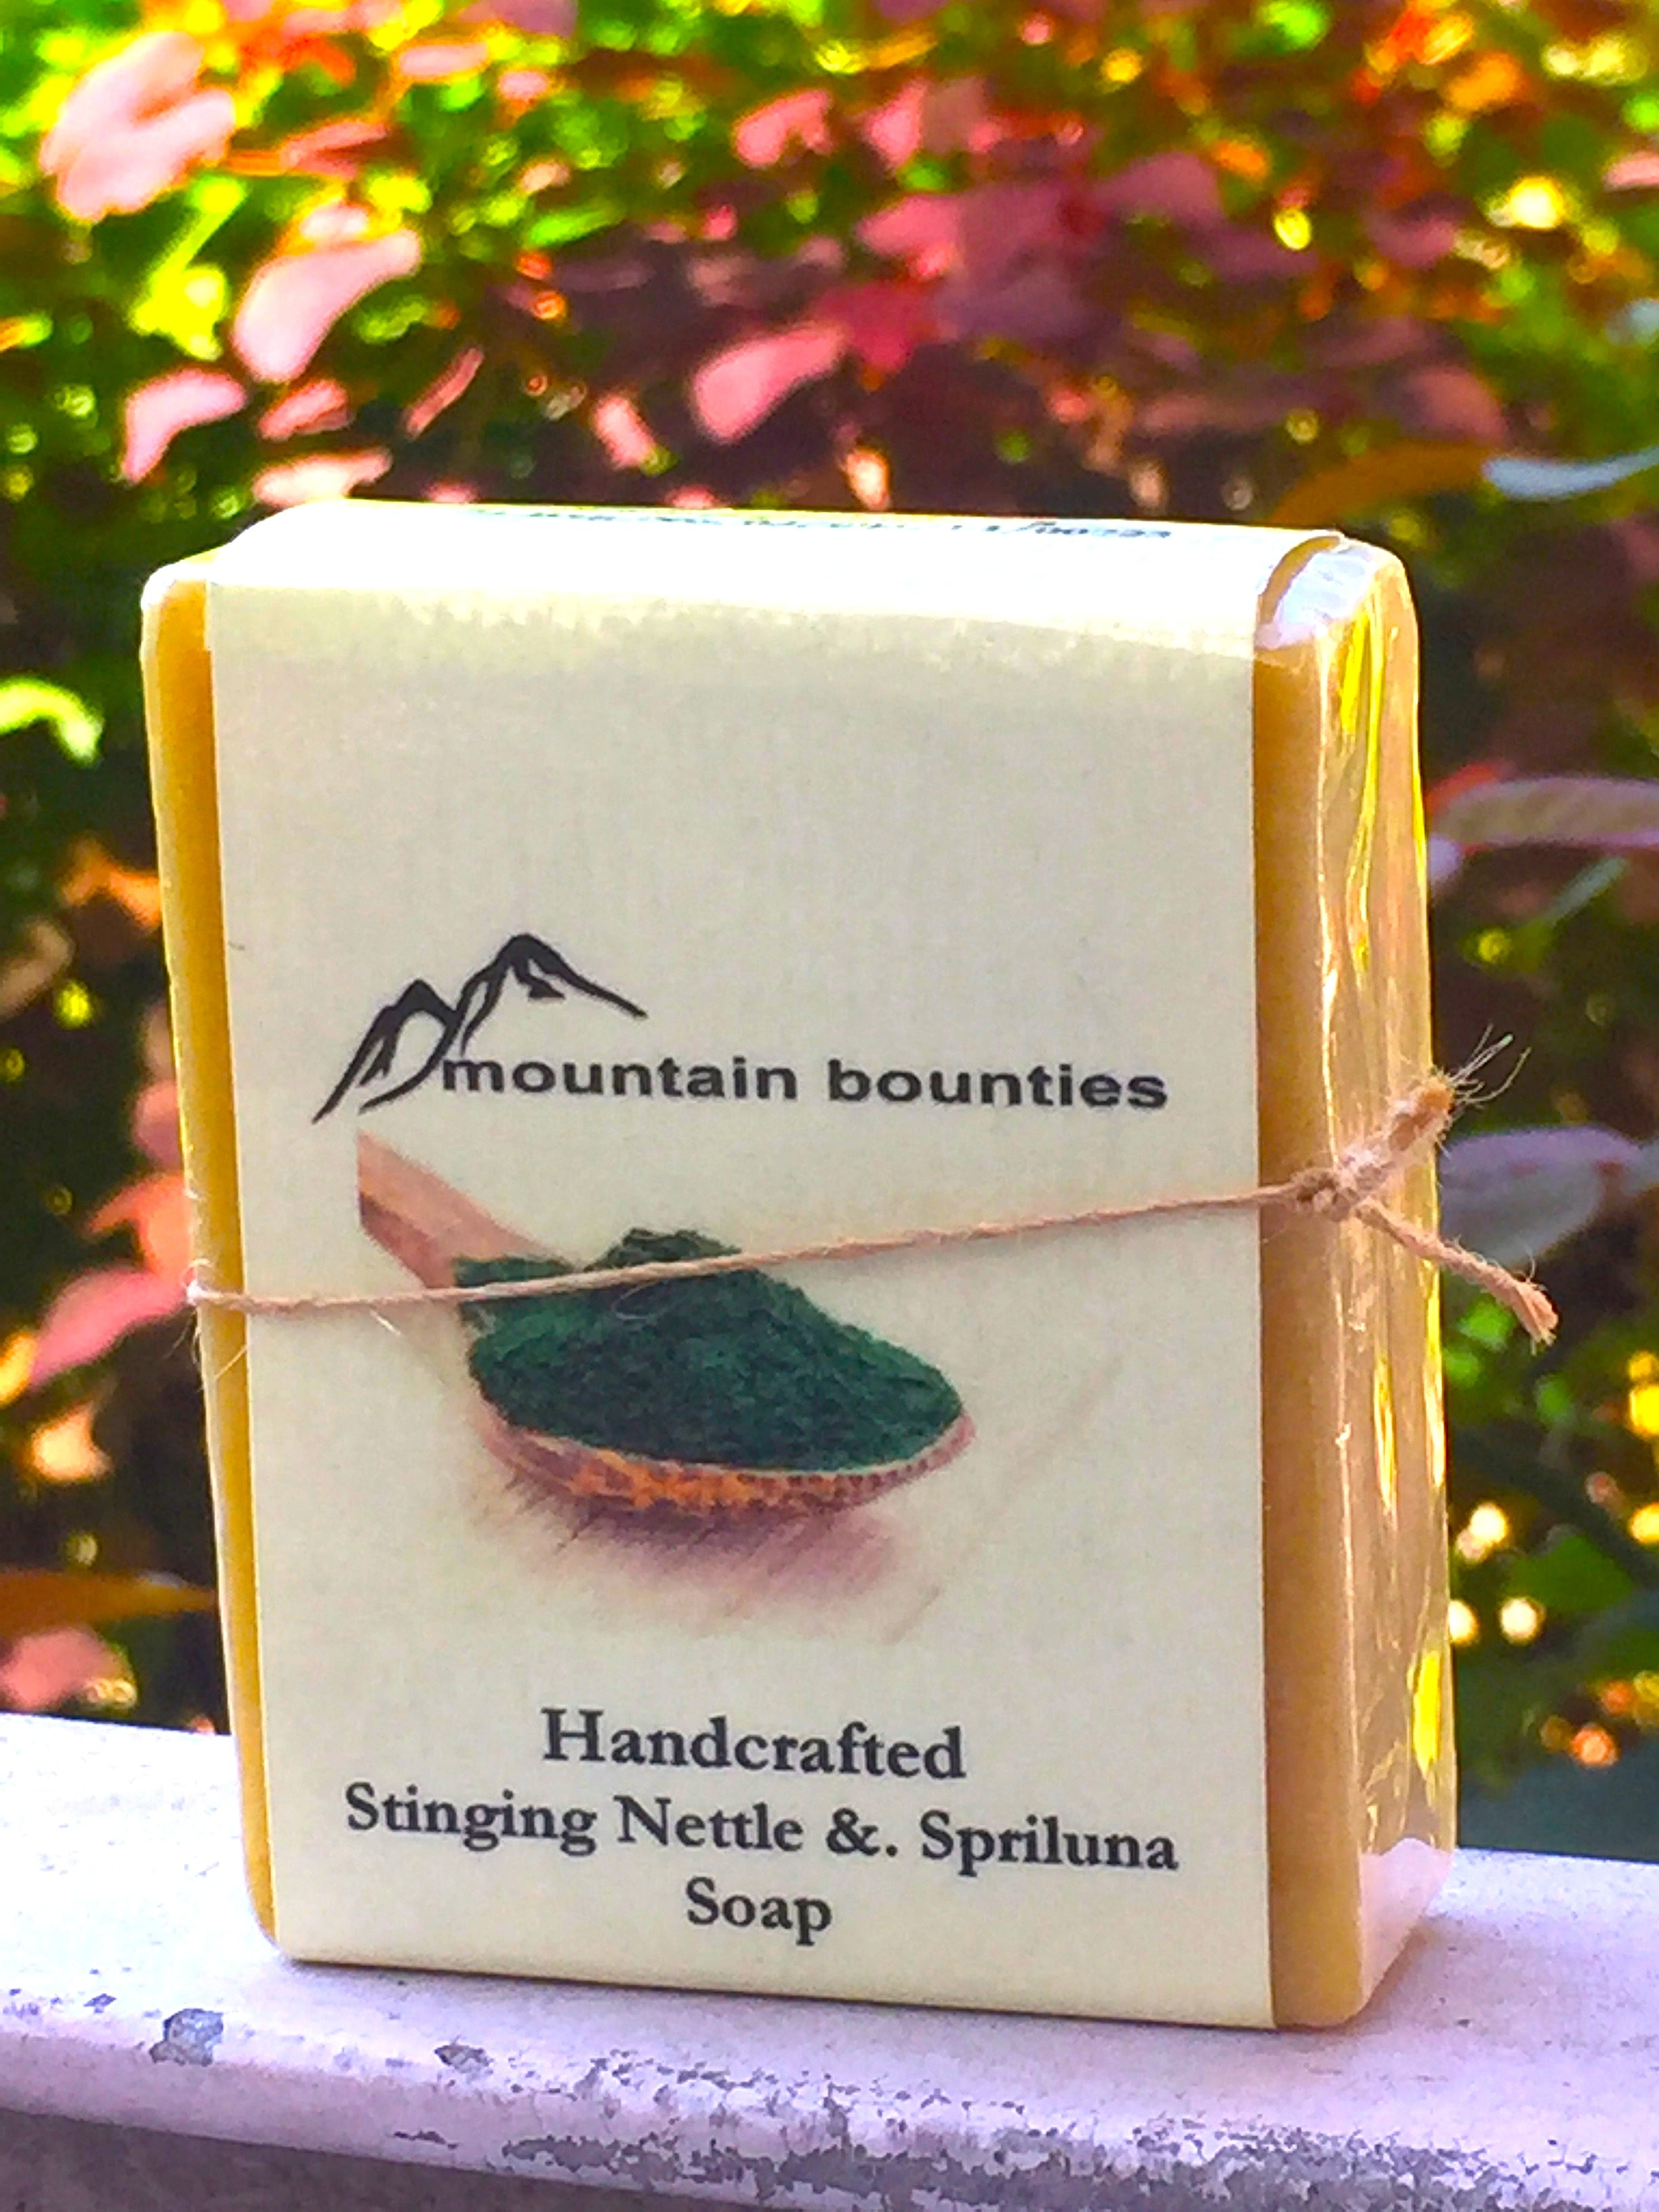 Handmade Stinging Nettle & Spirulina Soap, handmade cold pressed, 100% natural, 100% Handmade, Cold Pressed, herbal soap, cold pressed, Handmade, 100% Natural, Moisturising for face, hands and hair, Recommended for prematurely aged skin, sensitive, inflamed and dry skin. Cold pressed, 100% natural, handmade, Natural Skin Care, Natural oils, Skin Care, Himachal Oils, Himalayan Salt, Mountain Bounties, Himalayan people Care